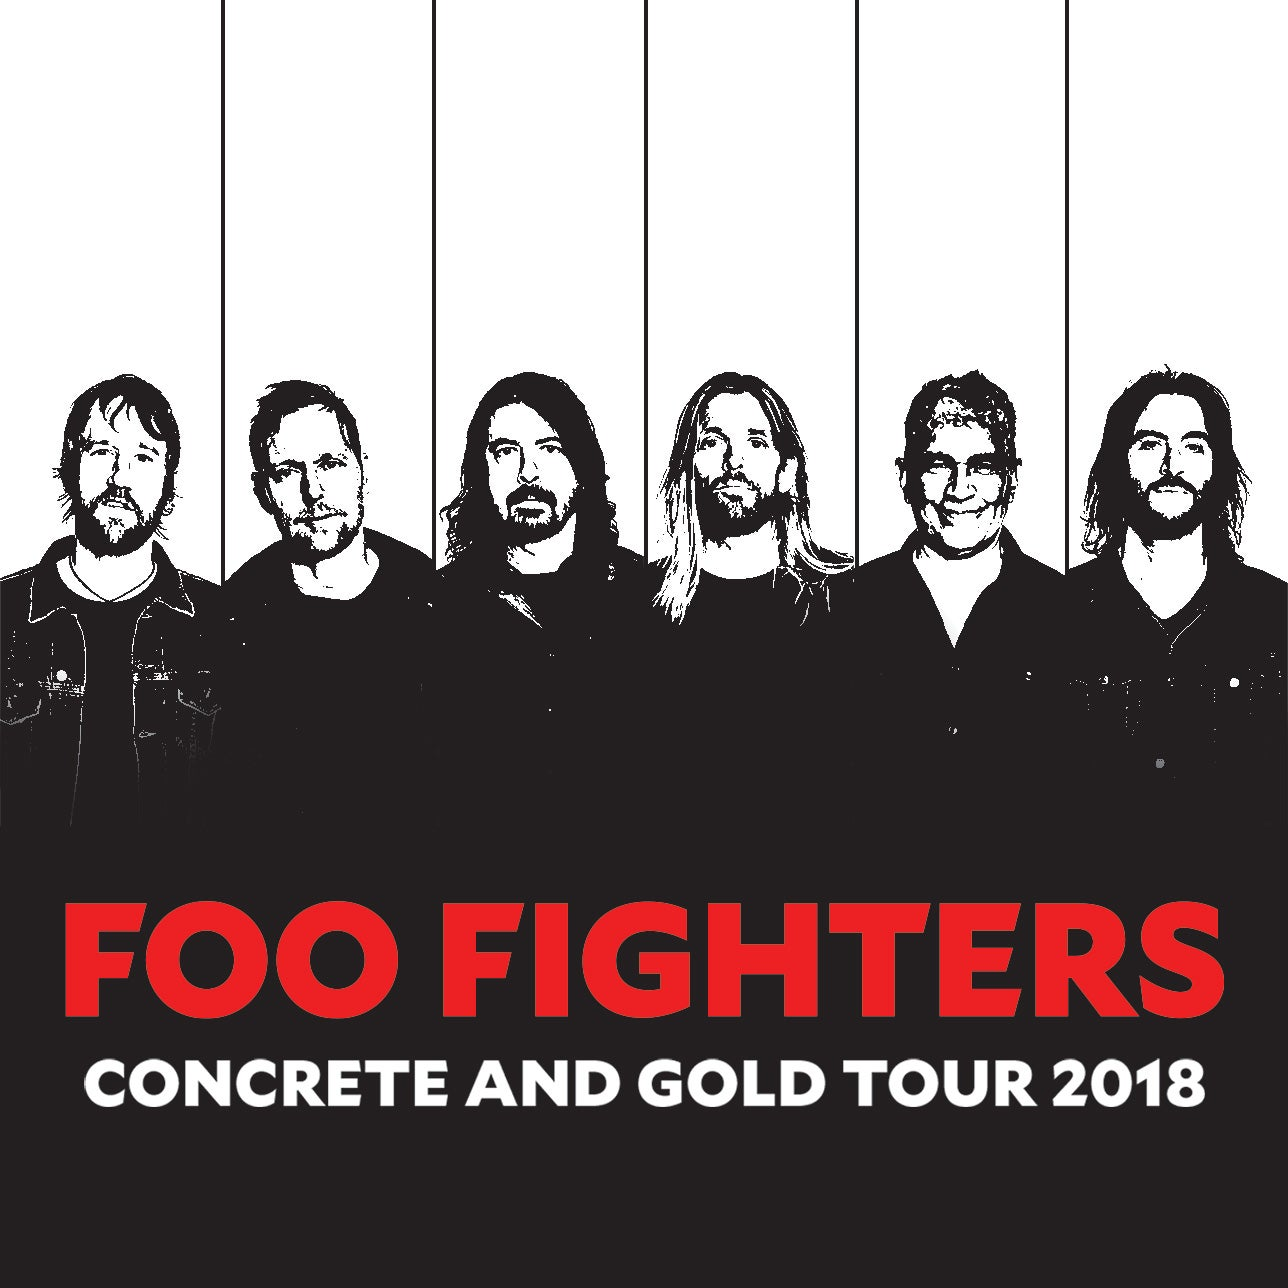 Foo Fighter Tour Ticket Prices